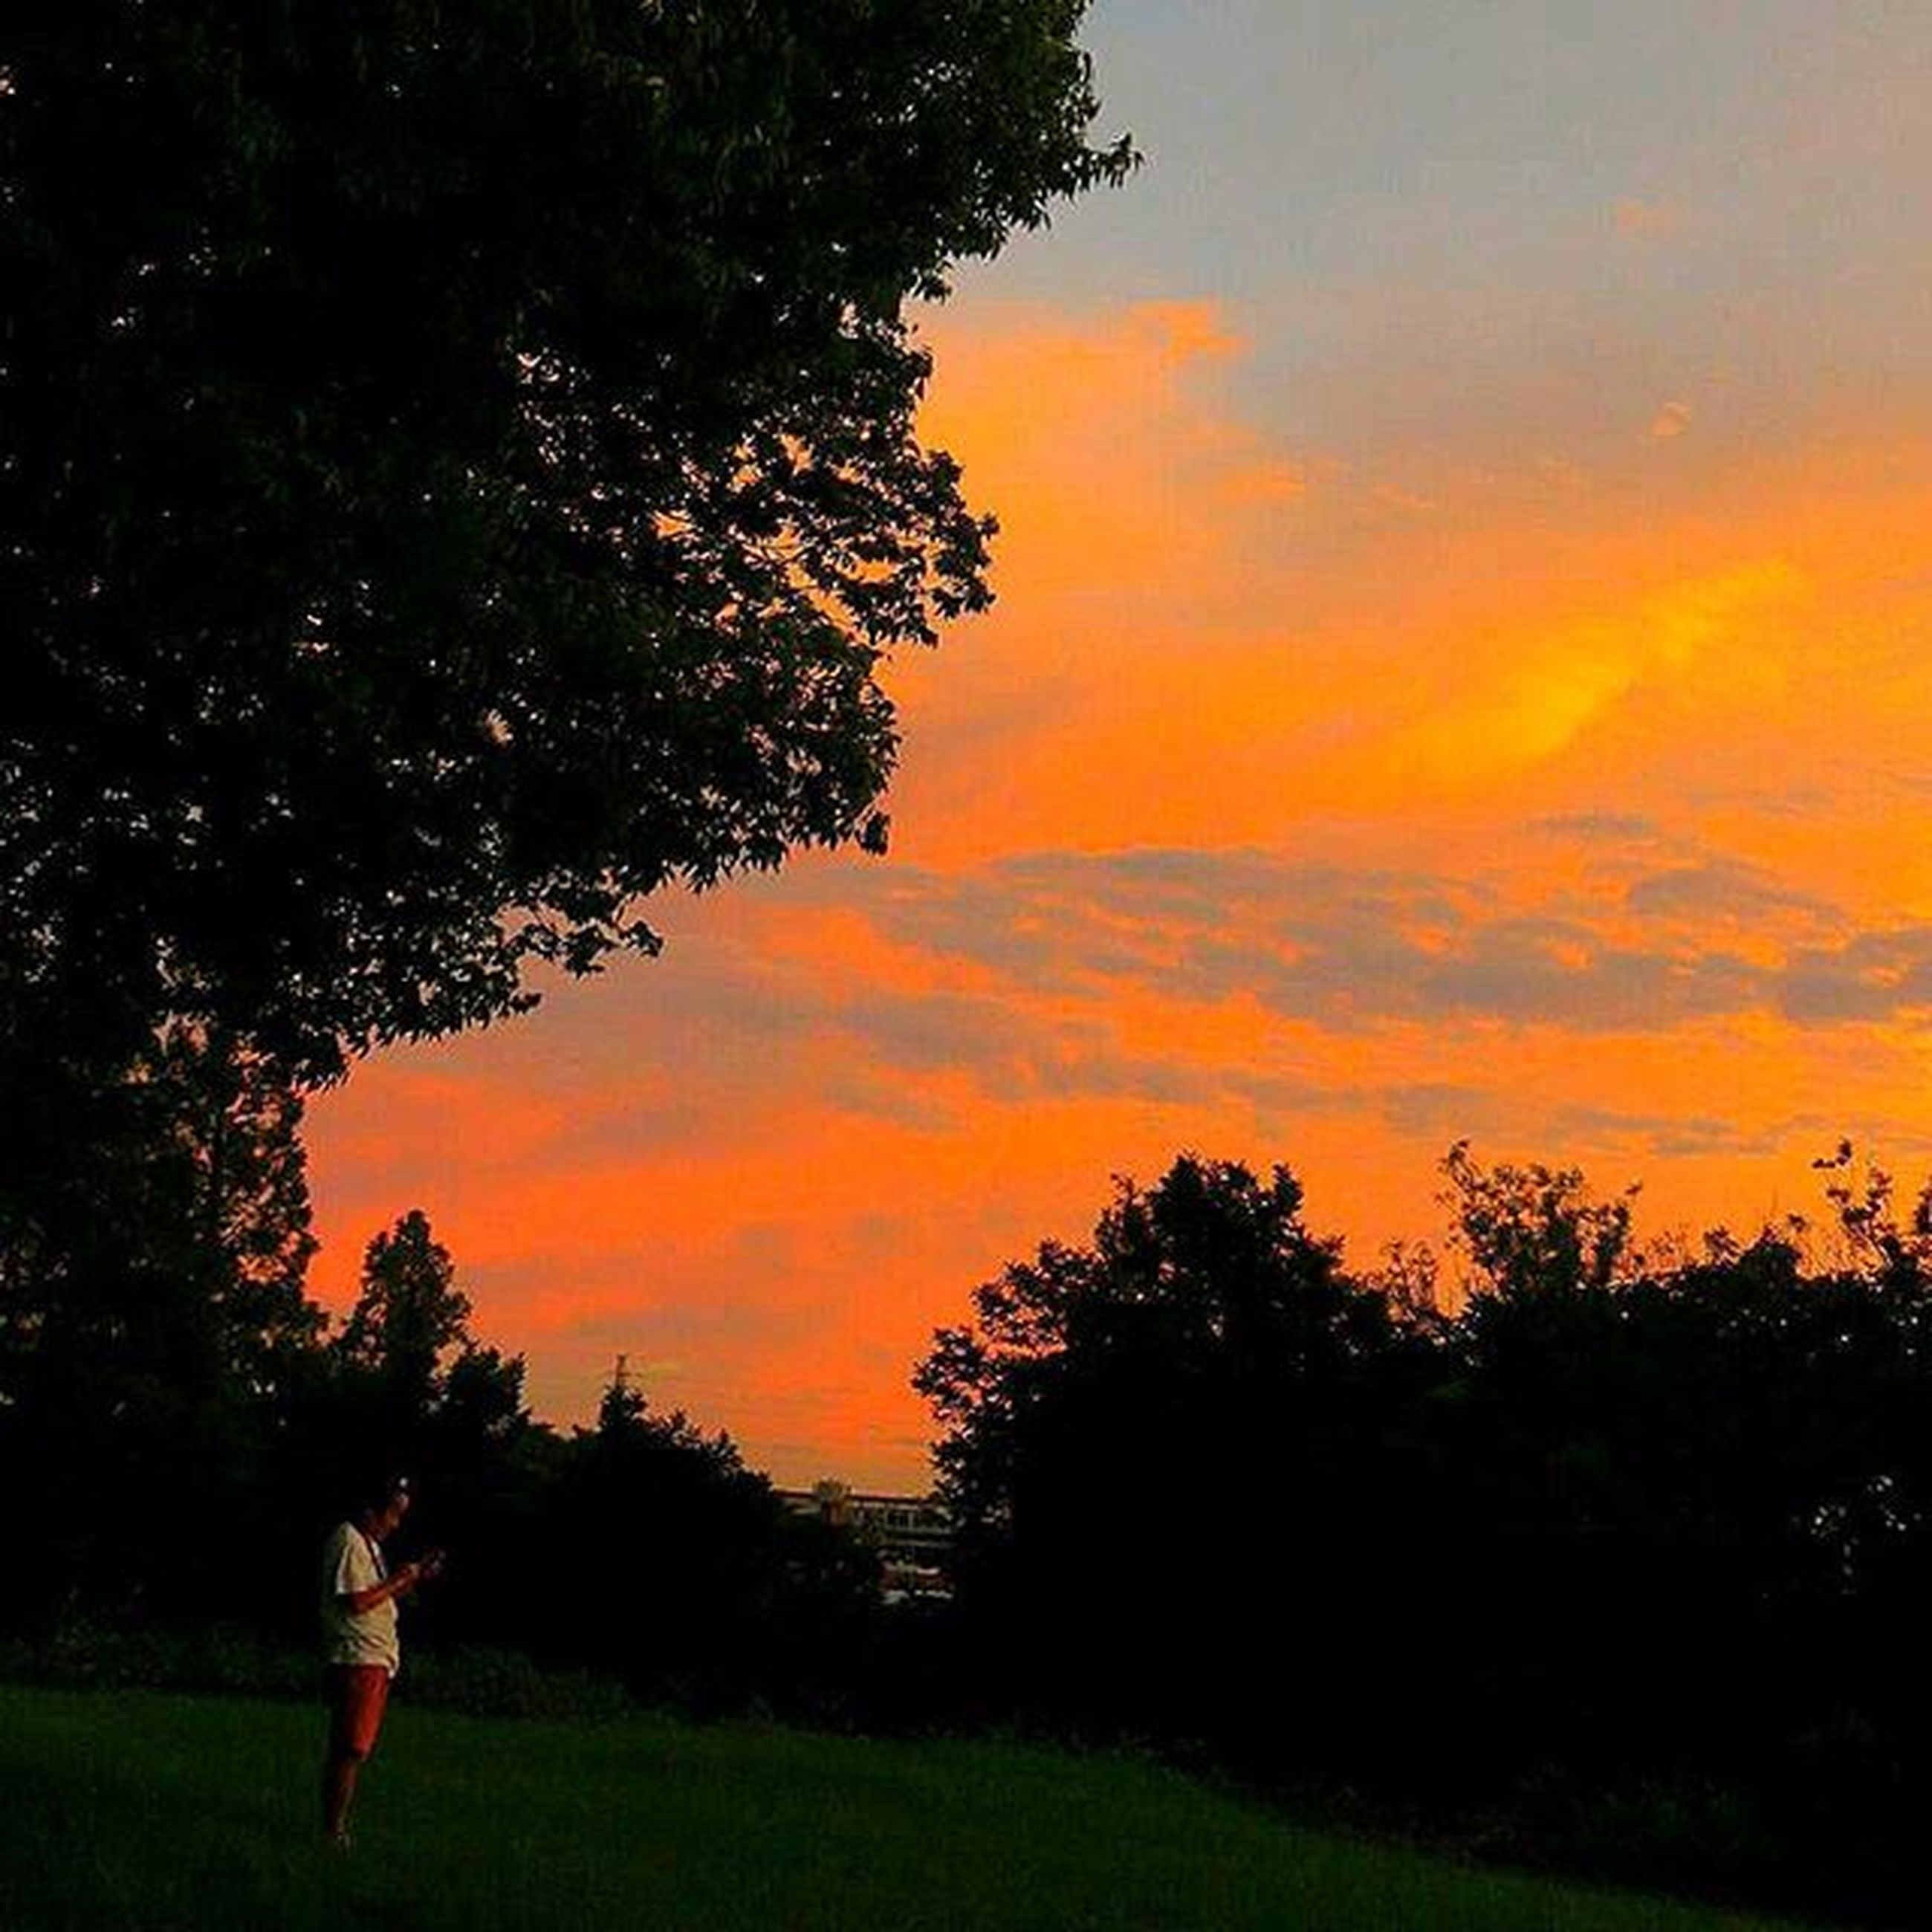 sunset, tree, sky, orange color, tranquility, beauty in nature, tranquil scene, scenics, silhouette, nature, cloud - sky, landscape, field, idyllic, growth, dramatic sky, cloud, grass, outdoors, non-urban scene